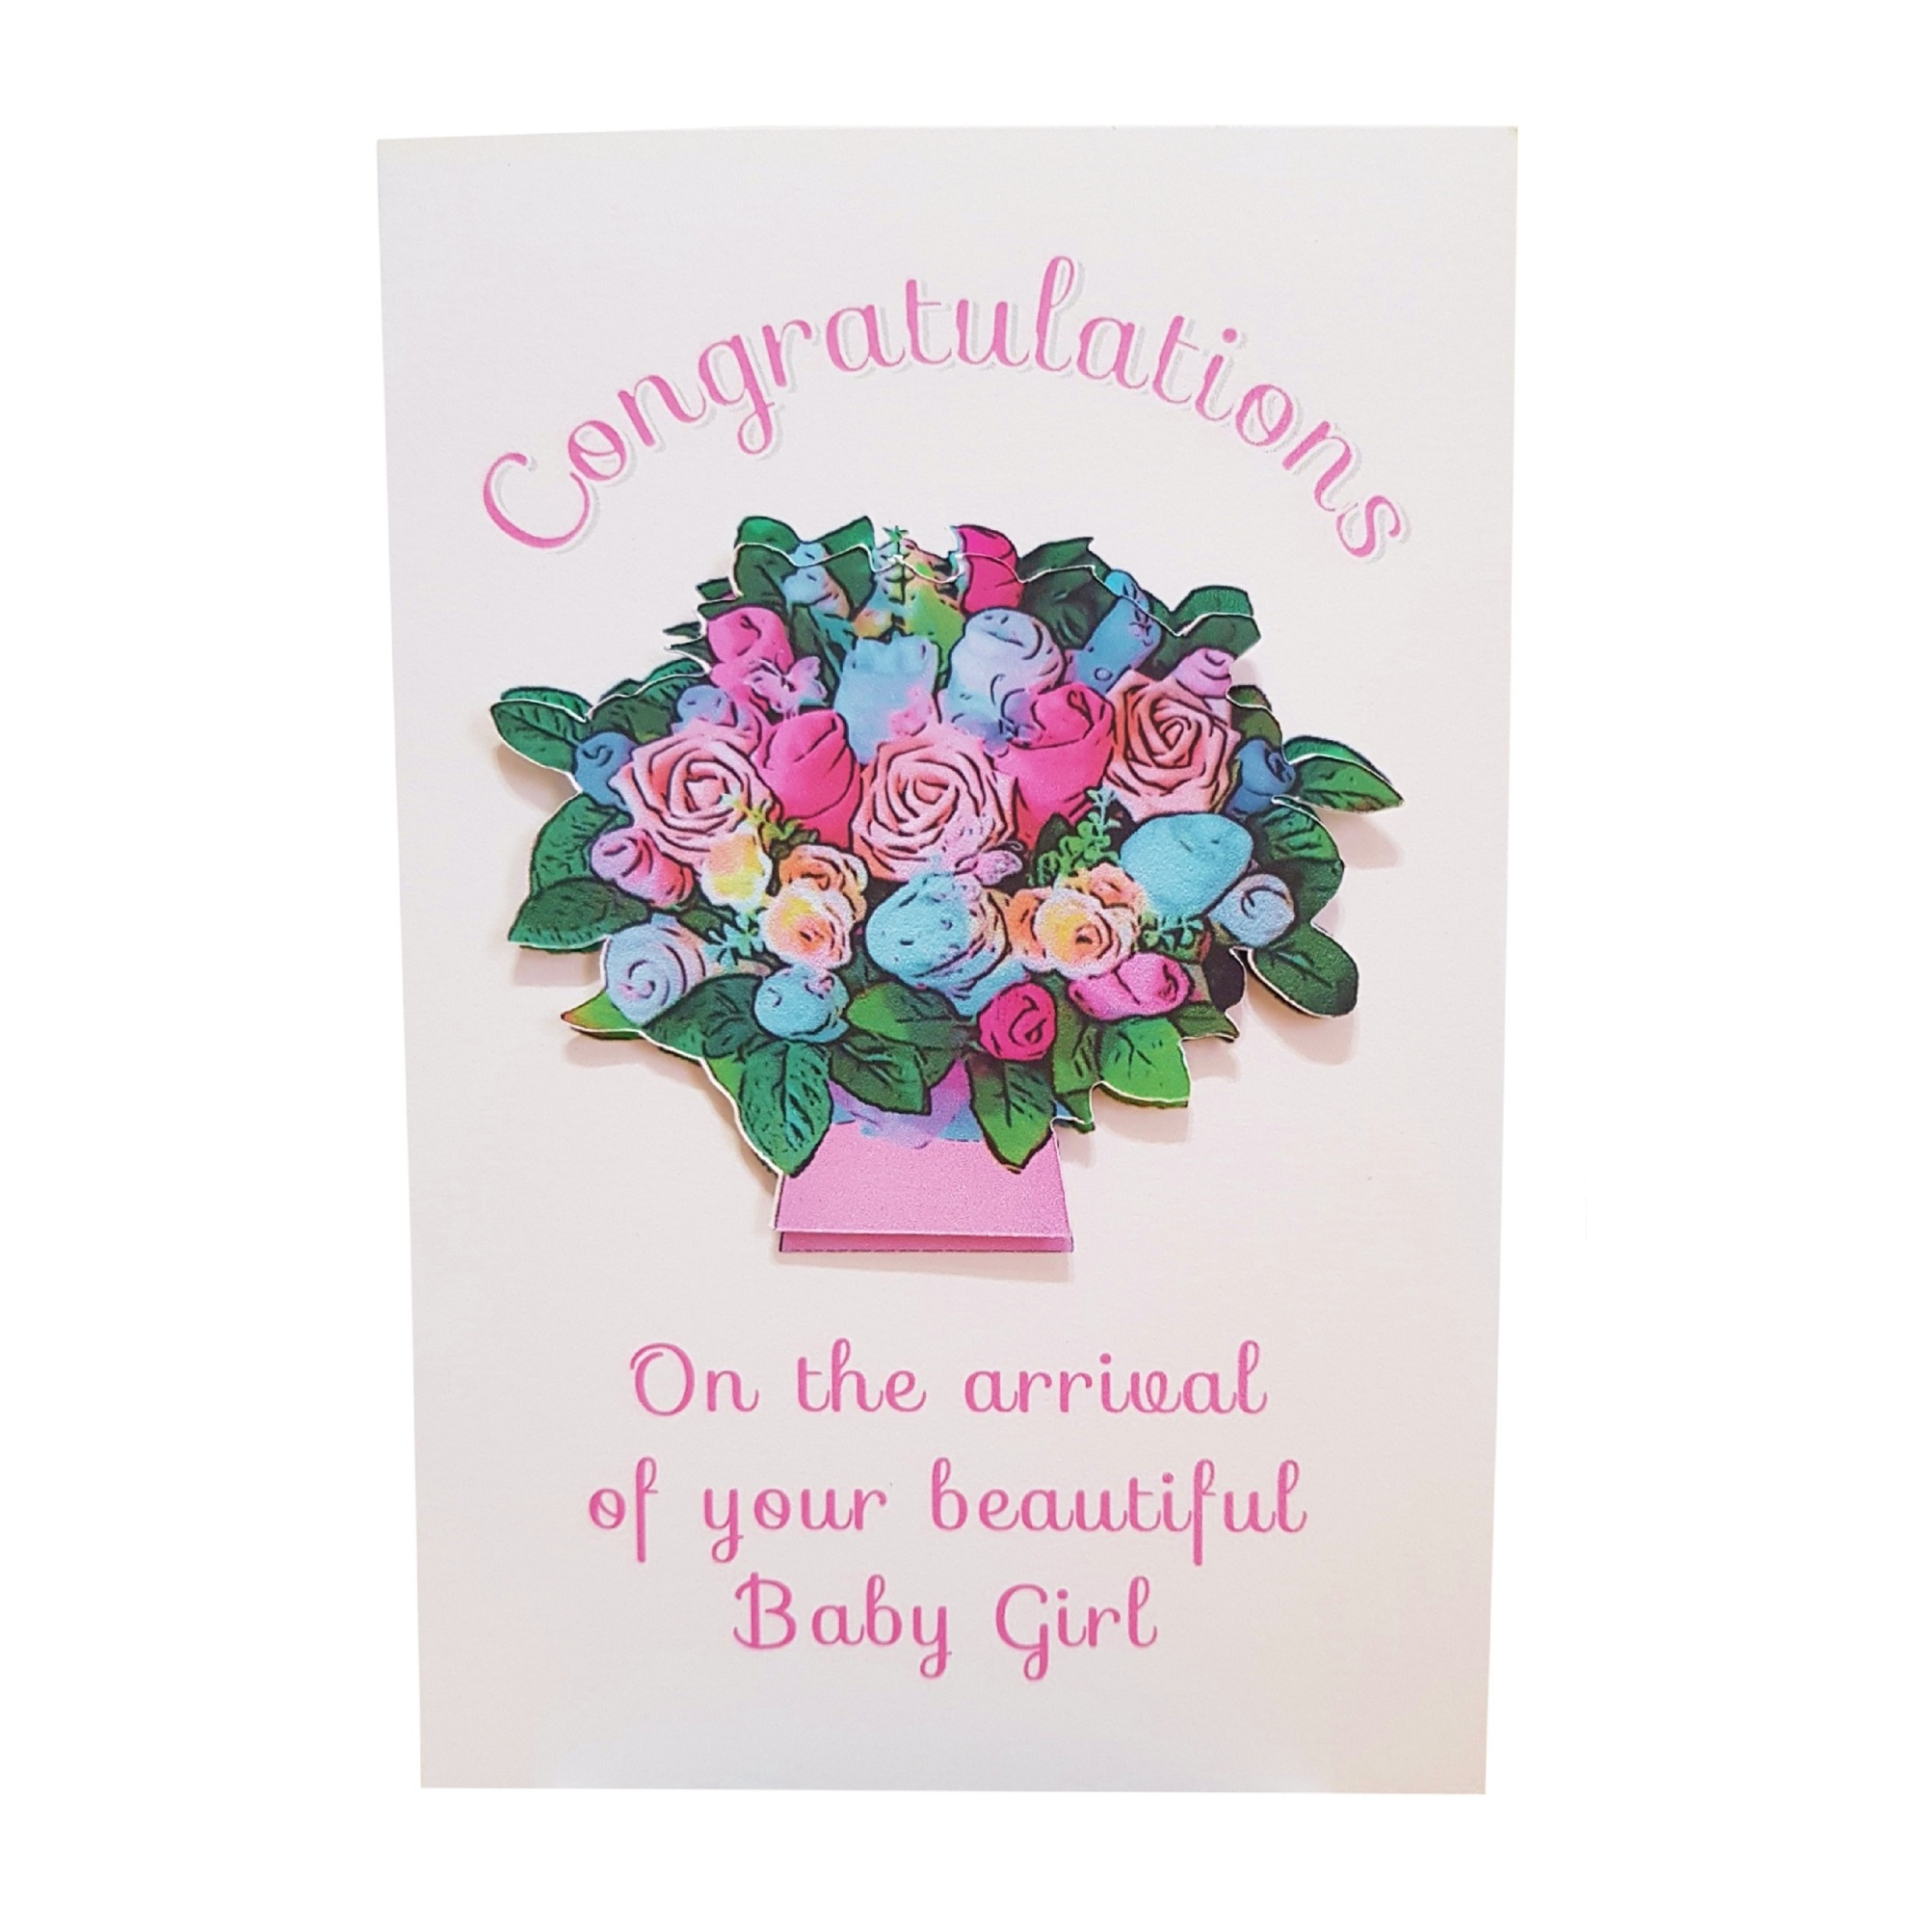 Congratulations - On the arrival of your beautiful Baby Girl